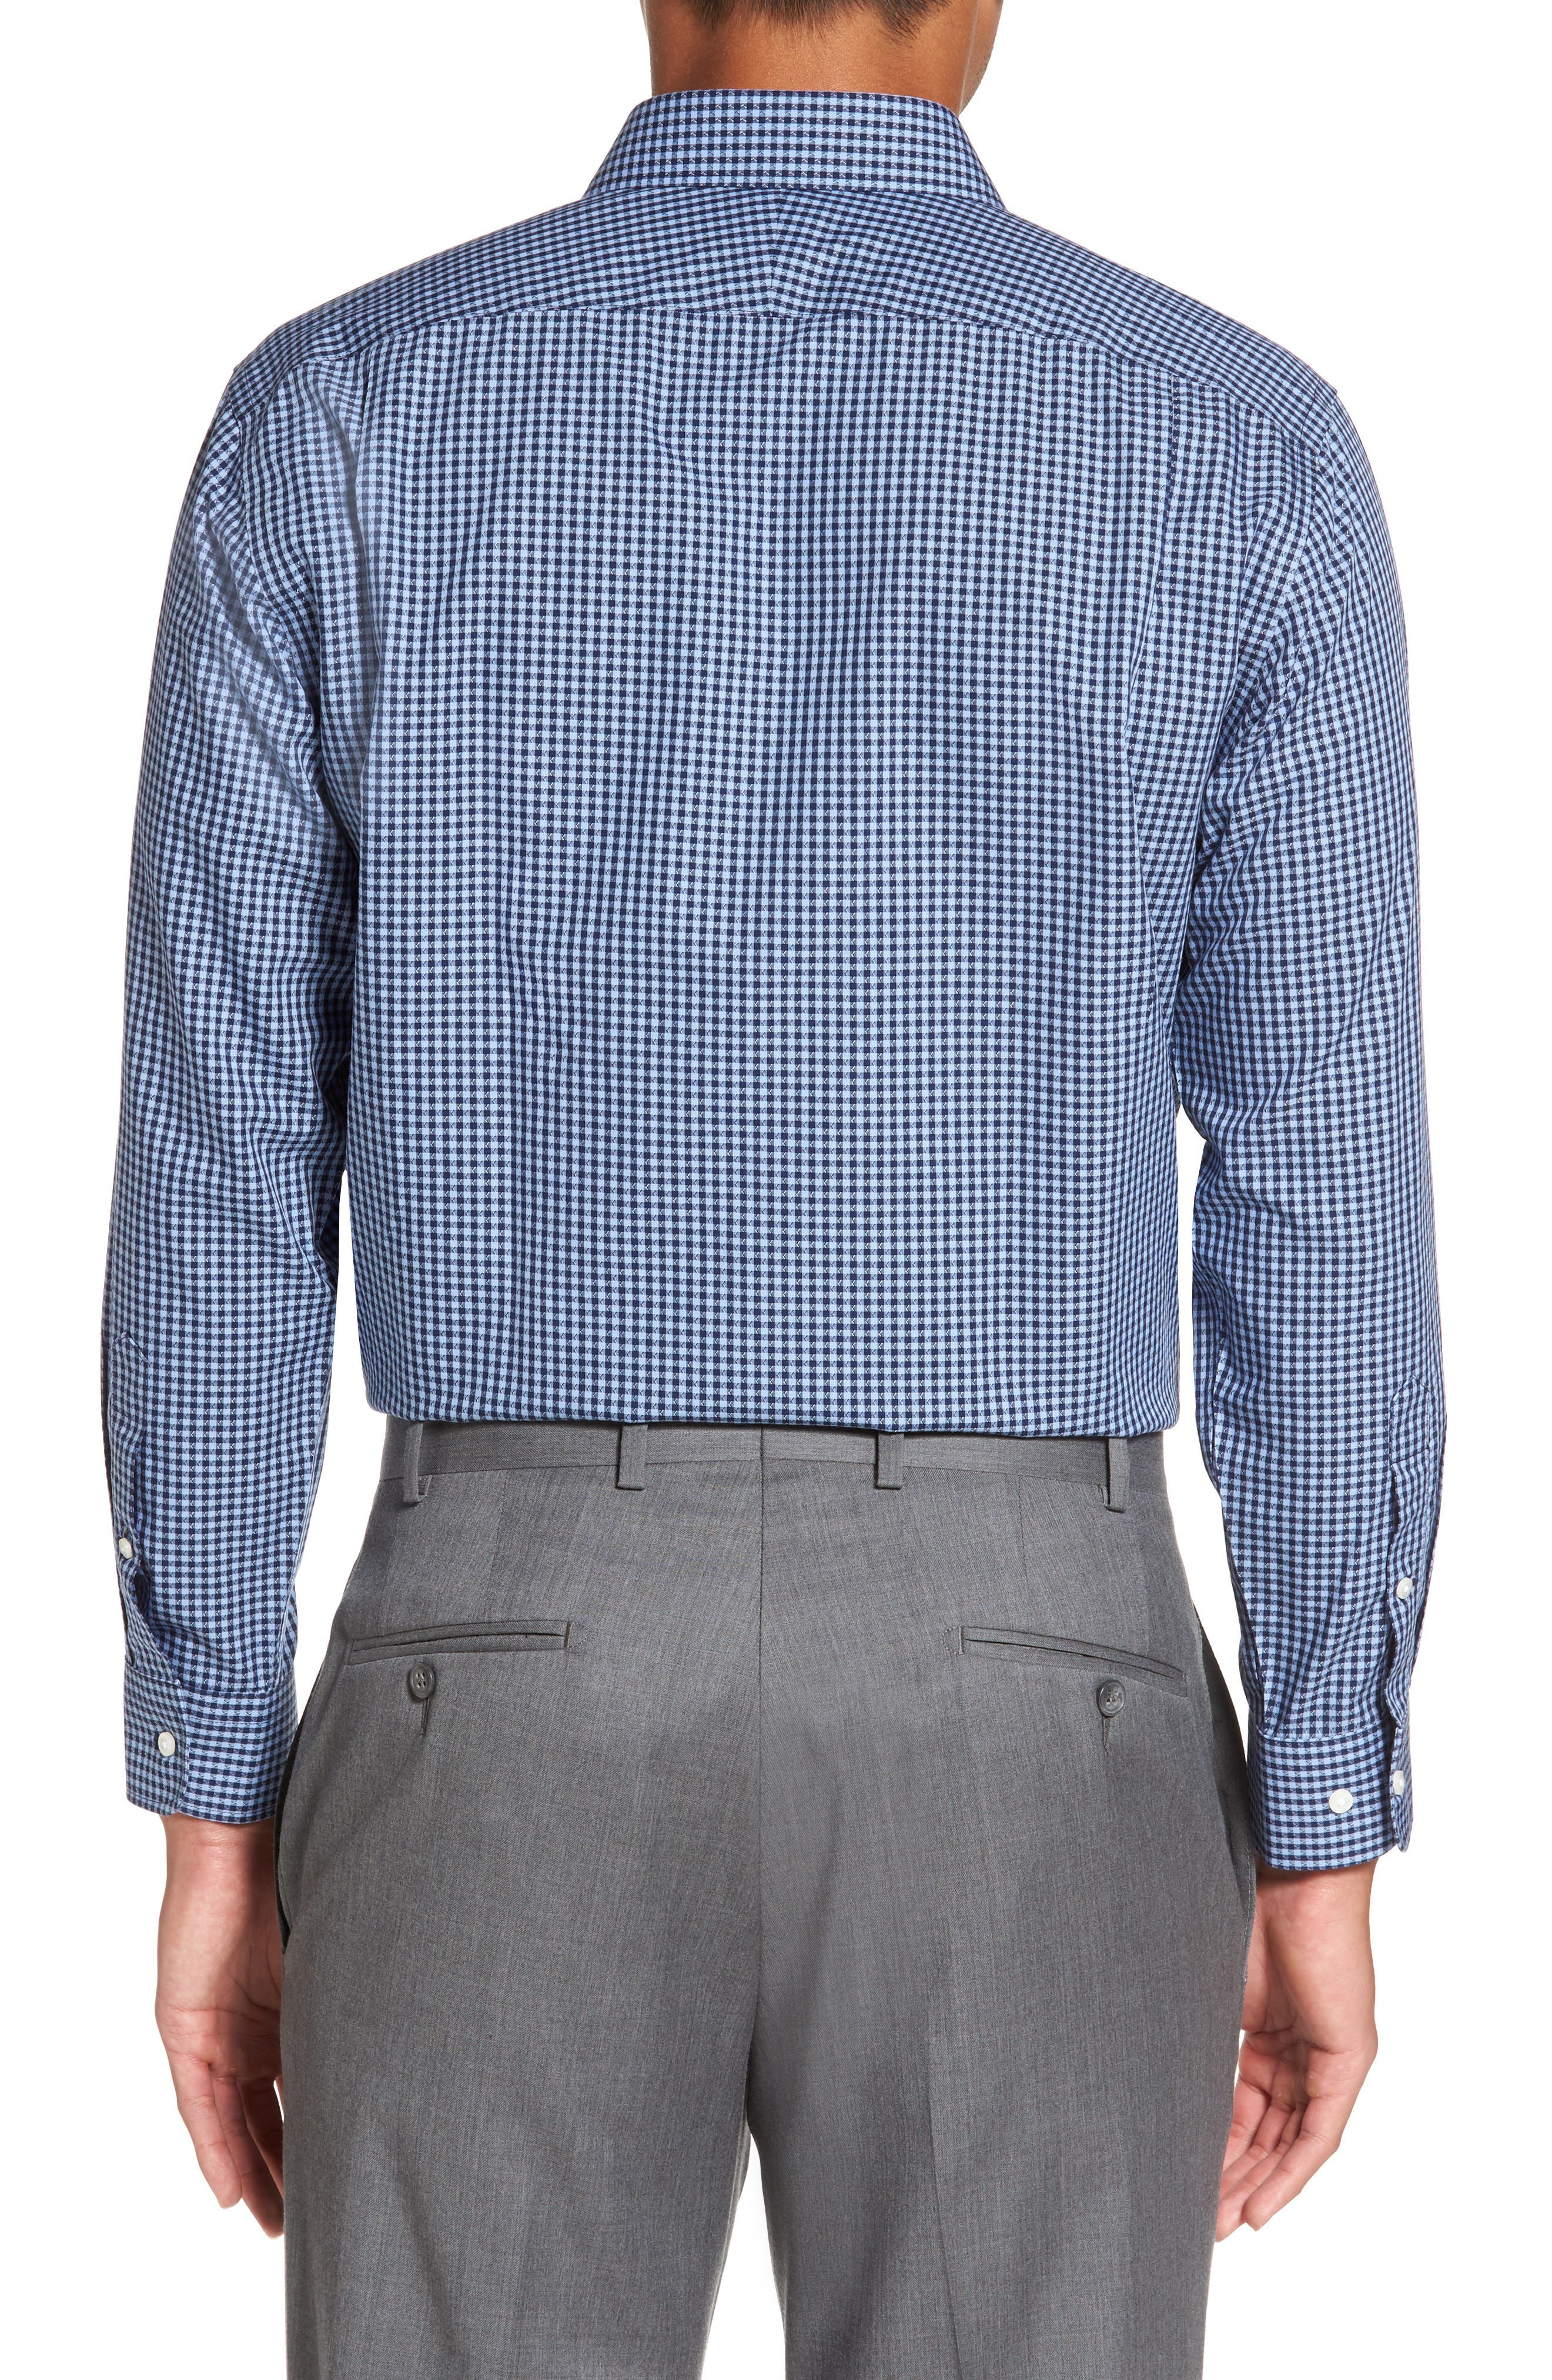 Smartcare<sup>™</sup> Trim Fit Check Dress Shirt,                             Alternate thumbnail 3, color,                             Blue Medieval